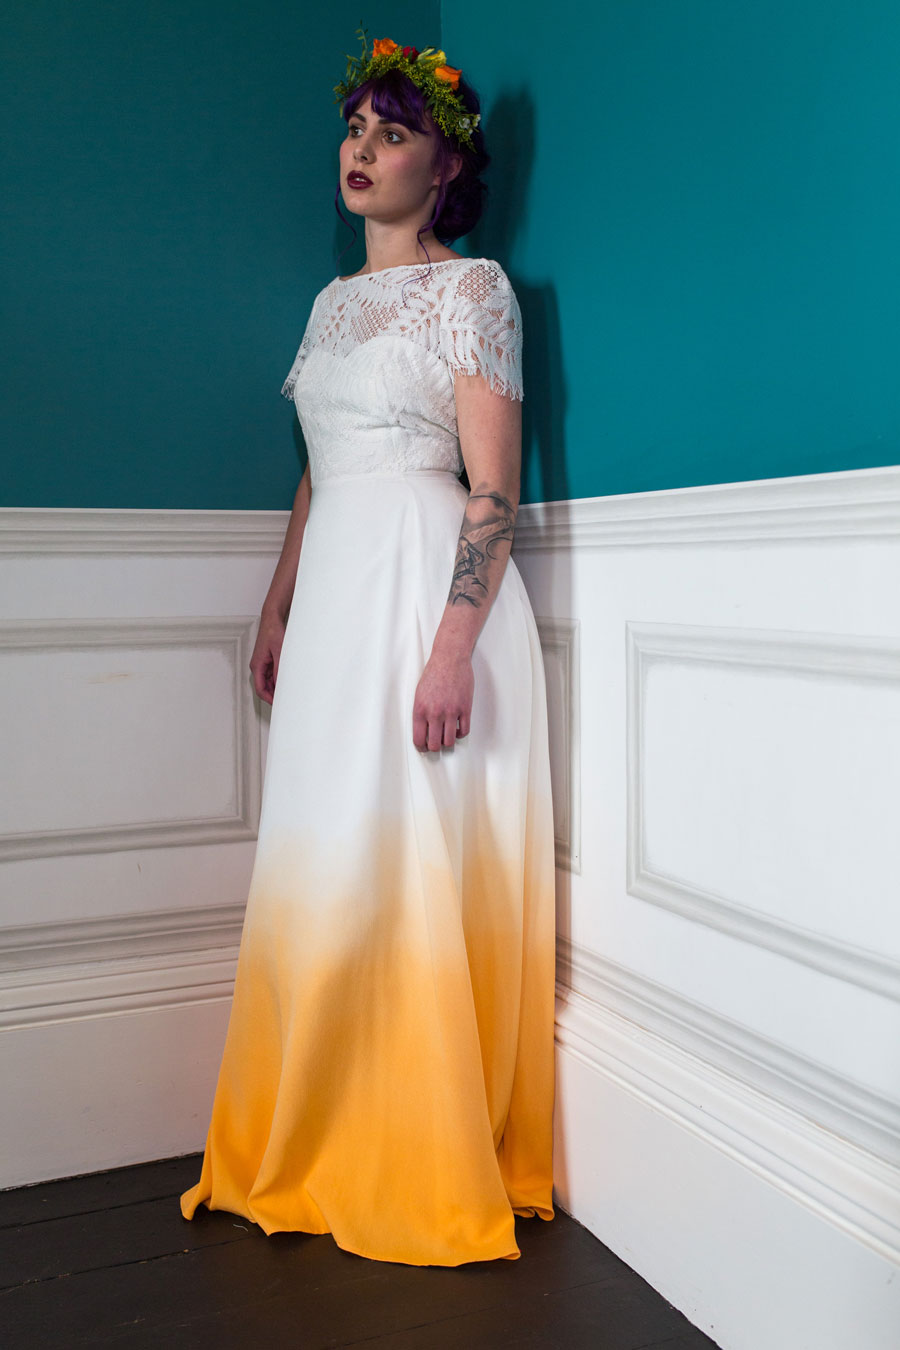 Quirky Wedding Dresses For Non-Traditional Brides- Lucy Can't Dance0038